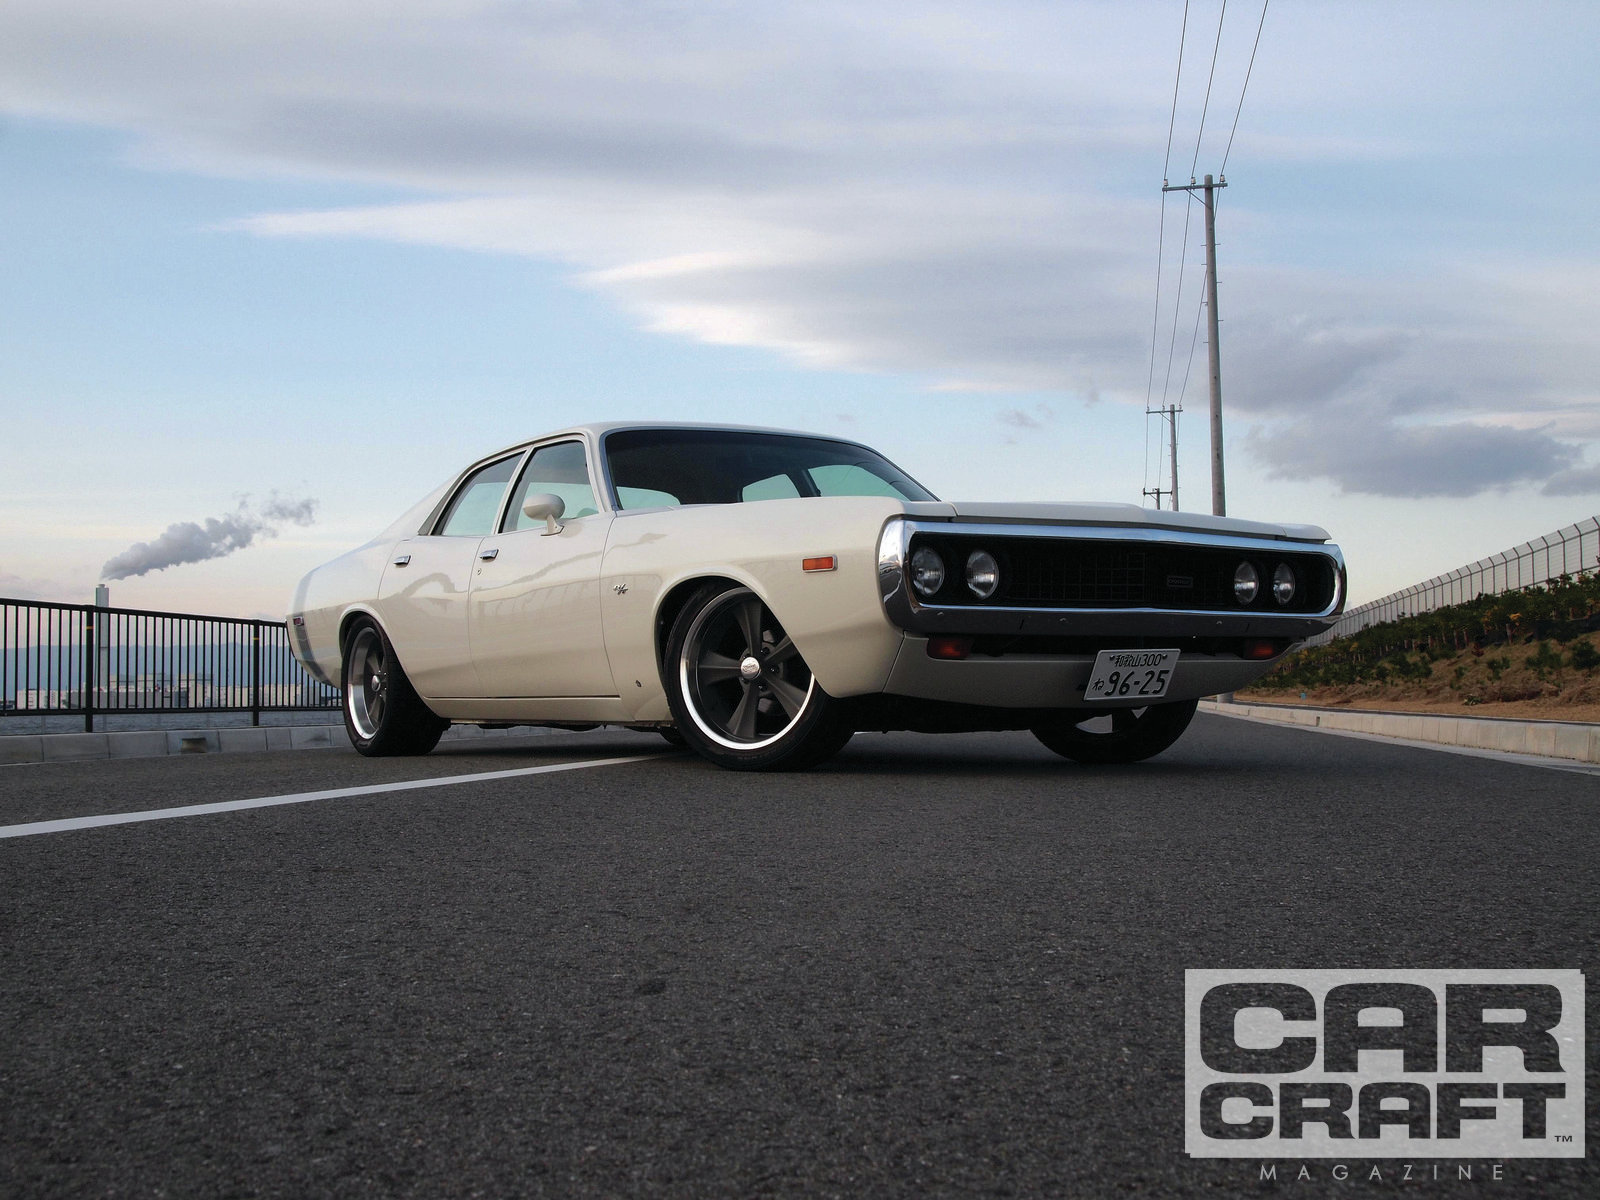 1968 Dodge Charger Wallpaper Cars 1972 Dodge Coronet No Gaijin Hot Rod Network